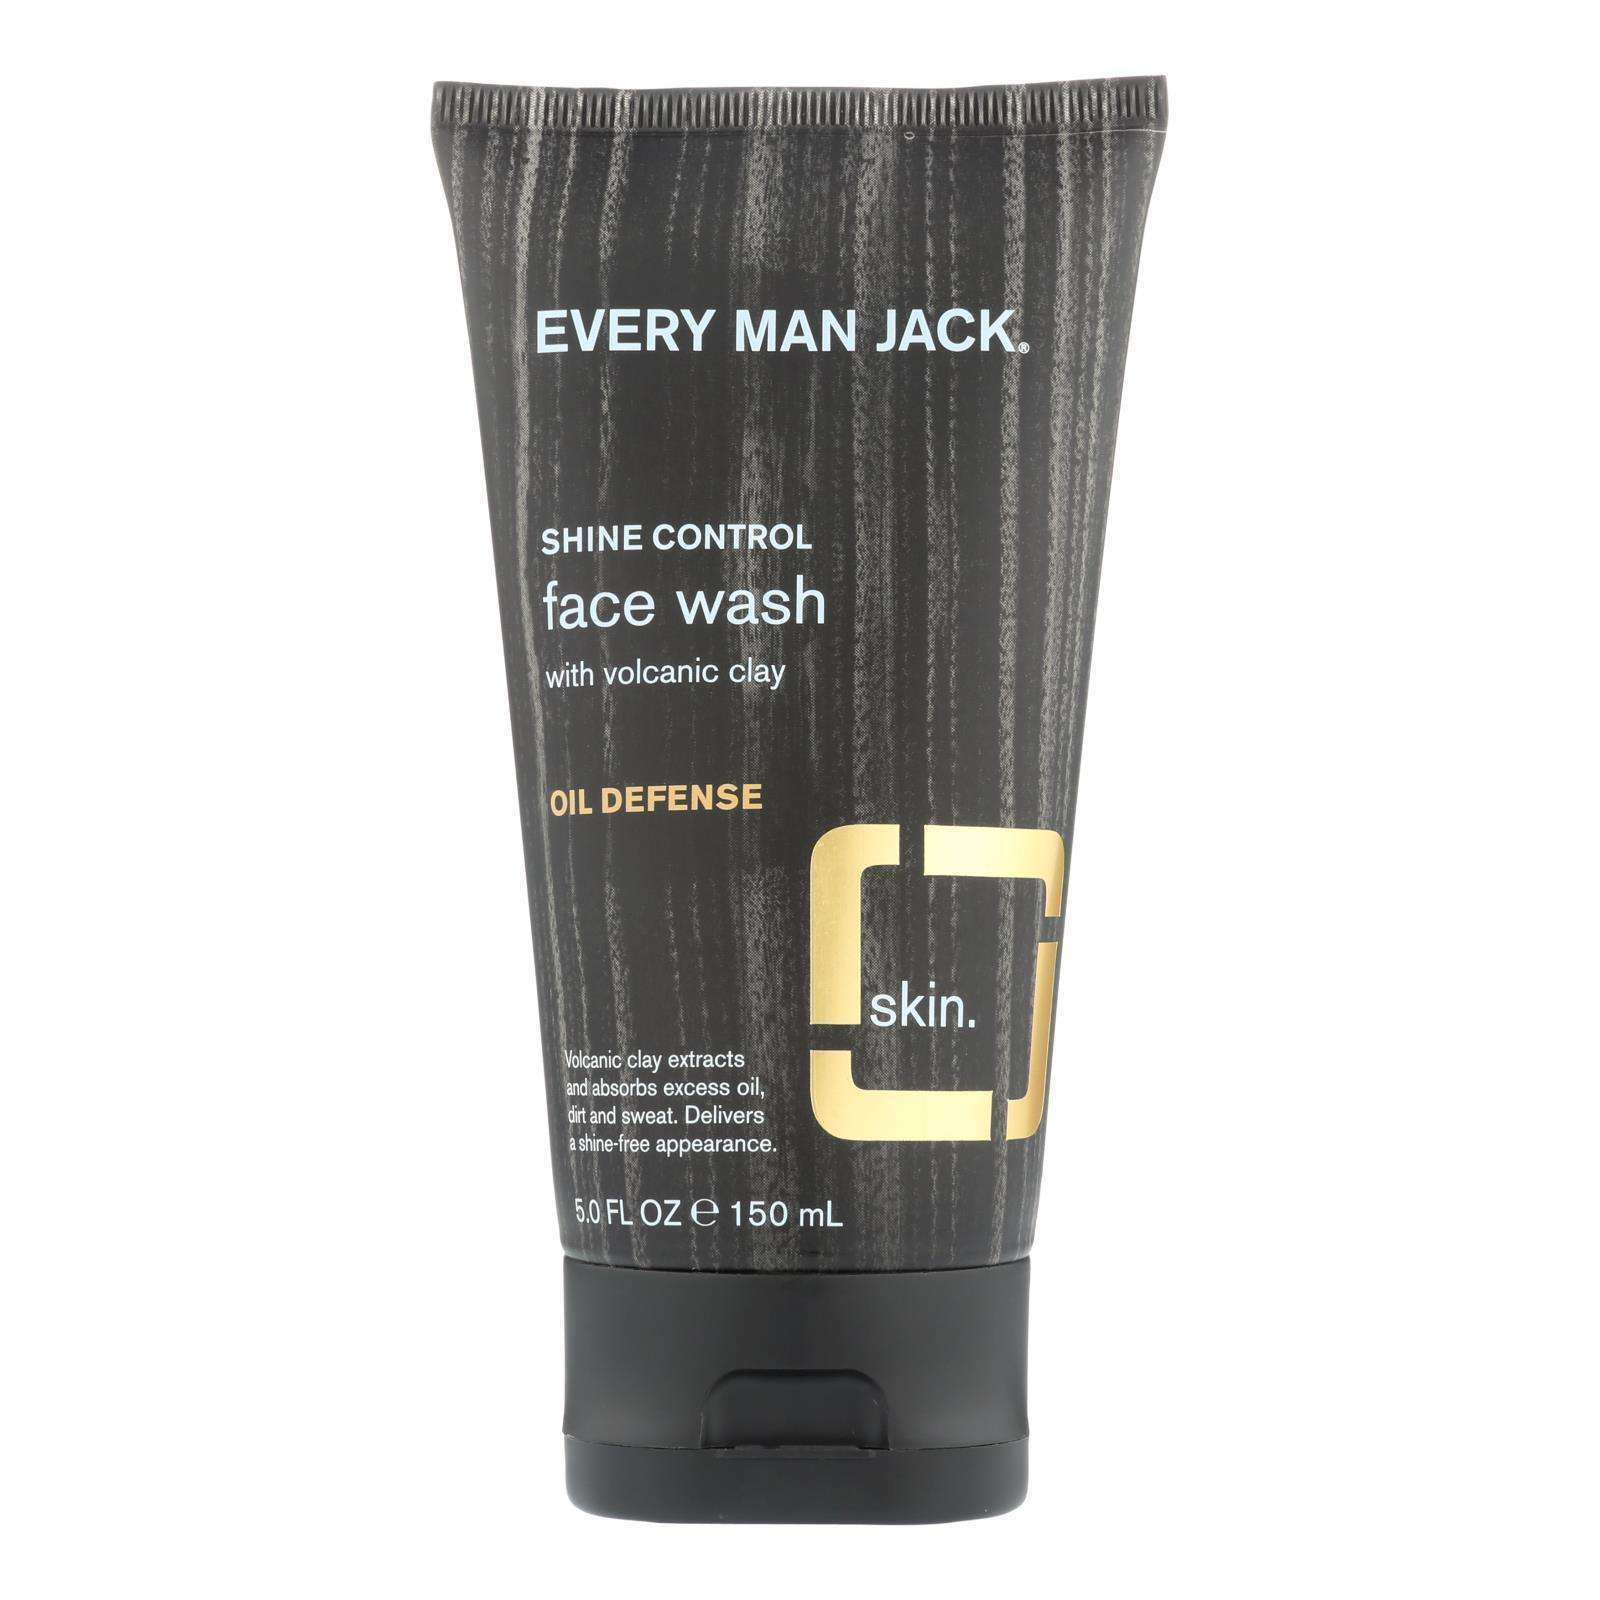 Every Man Jack Face Wash - Fragrance Free - 5 Fl Oz. - BeeGreen